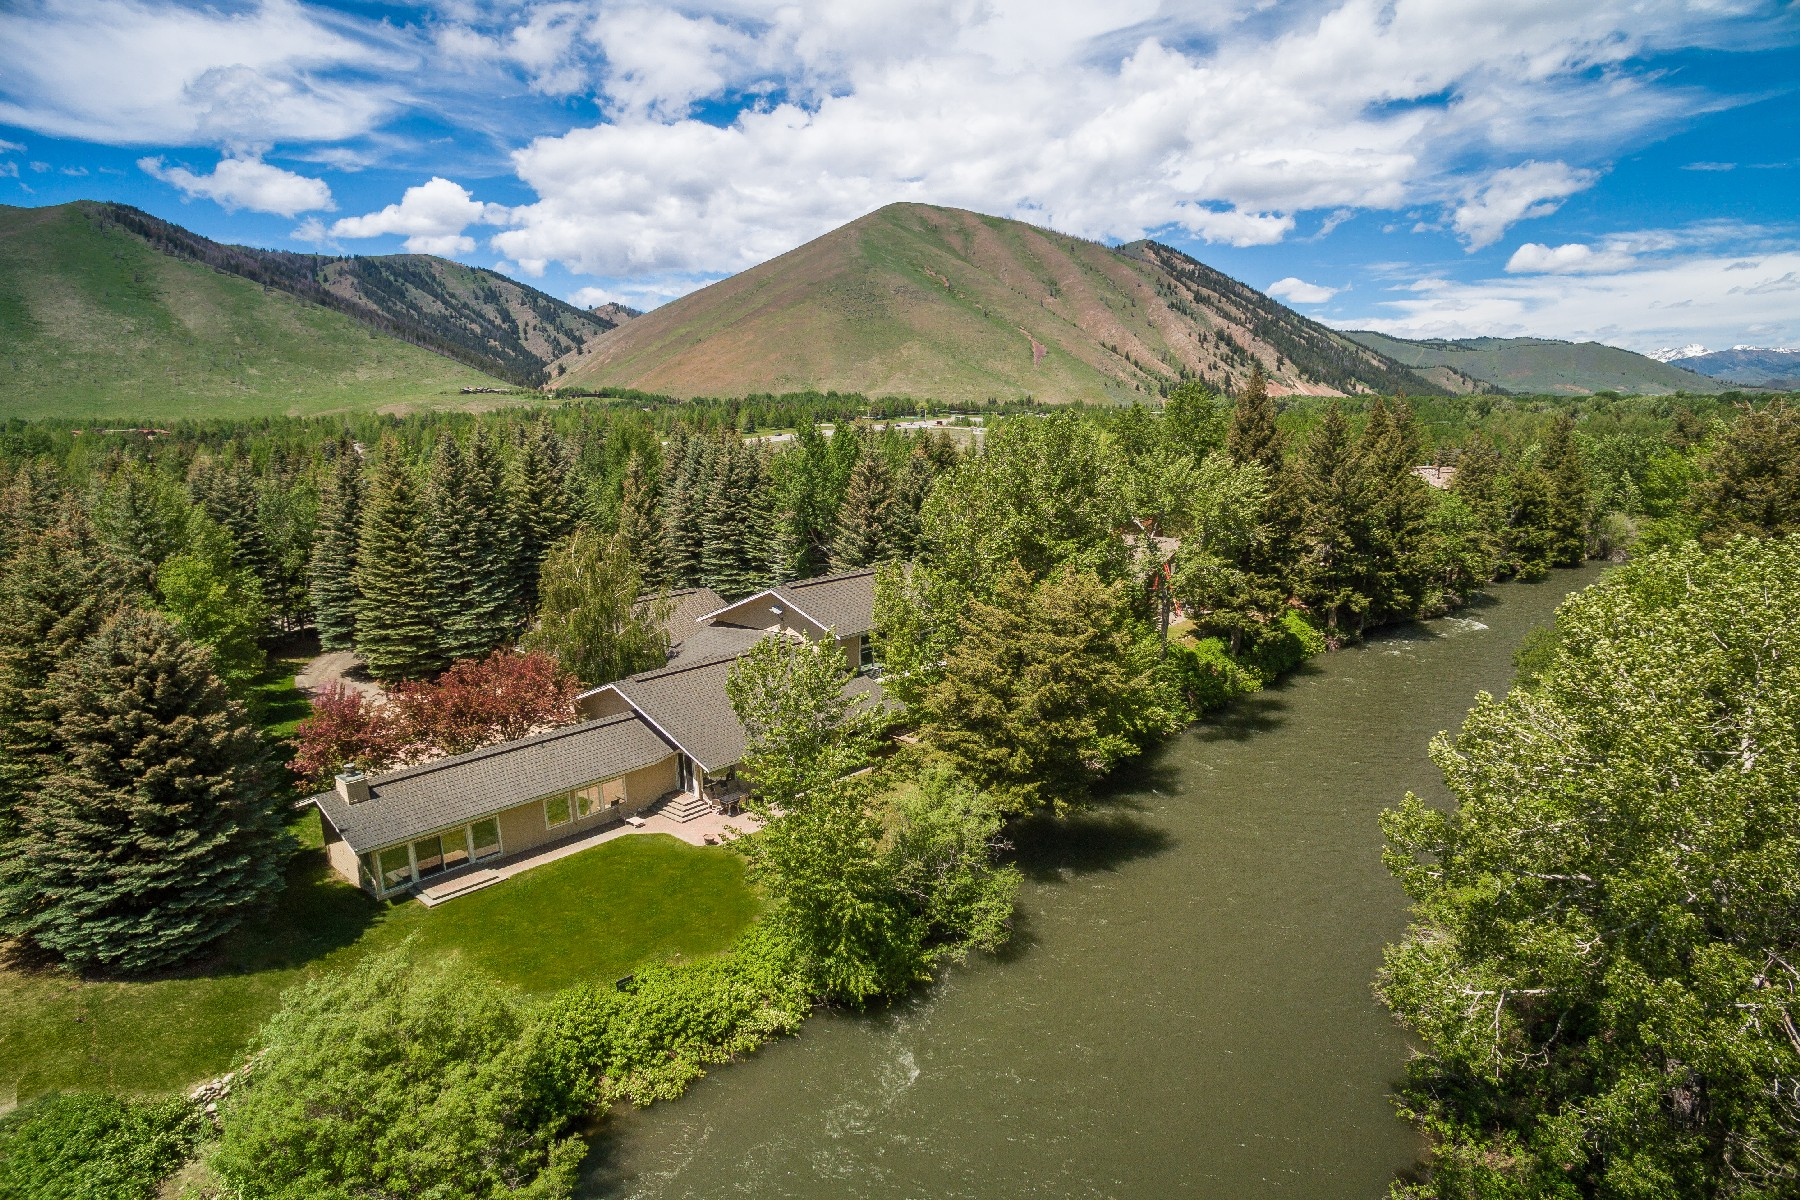 Single Family Home for Sale at Twenty feet from the water 141 Audubon Place Ketchum, Idaho 83340 United States